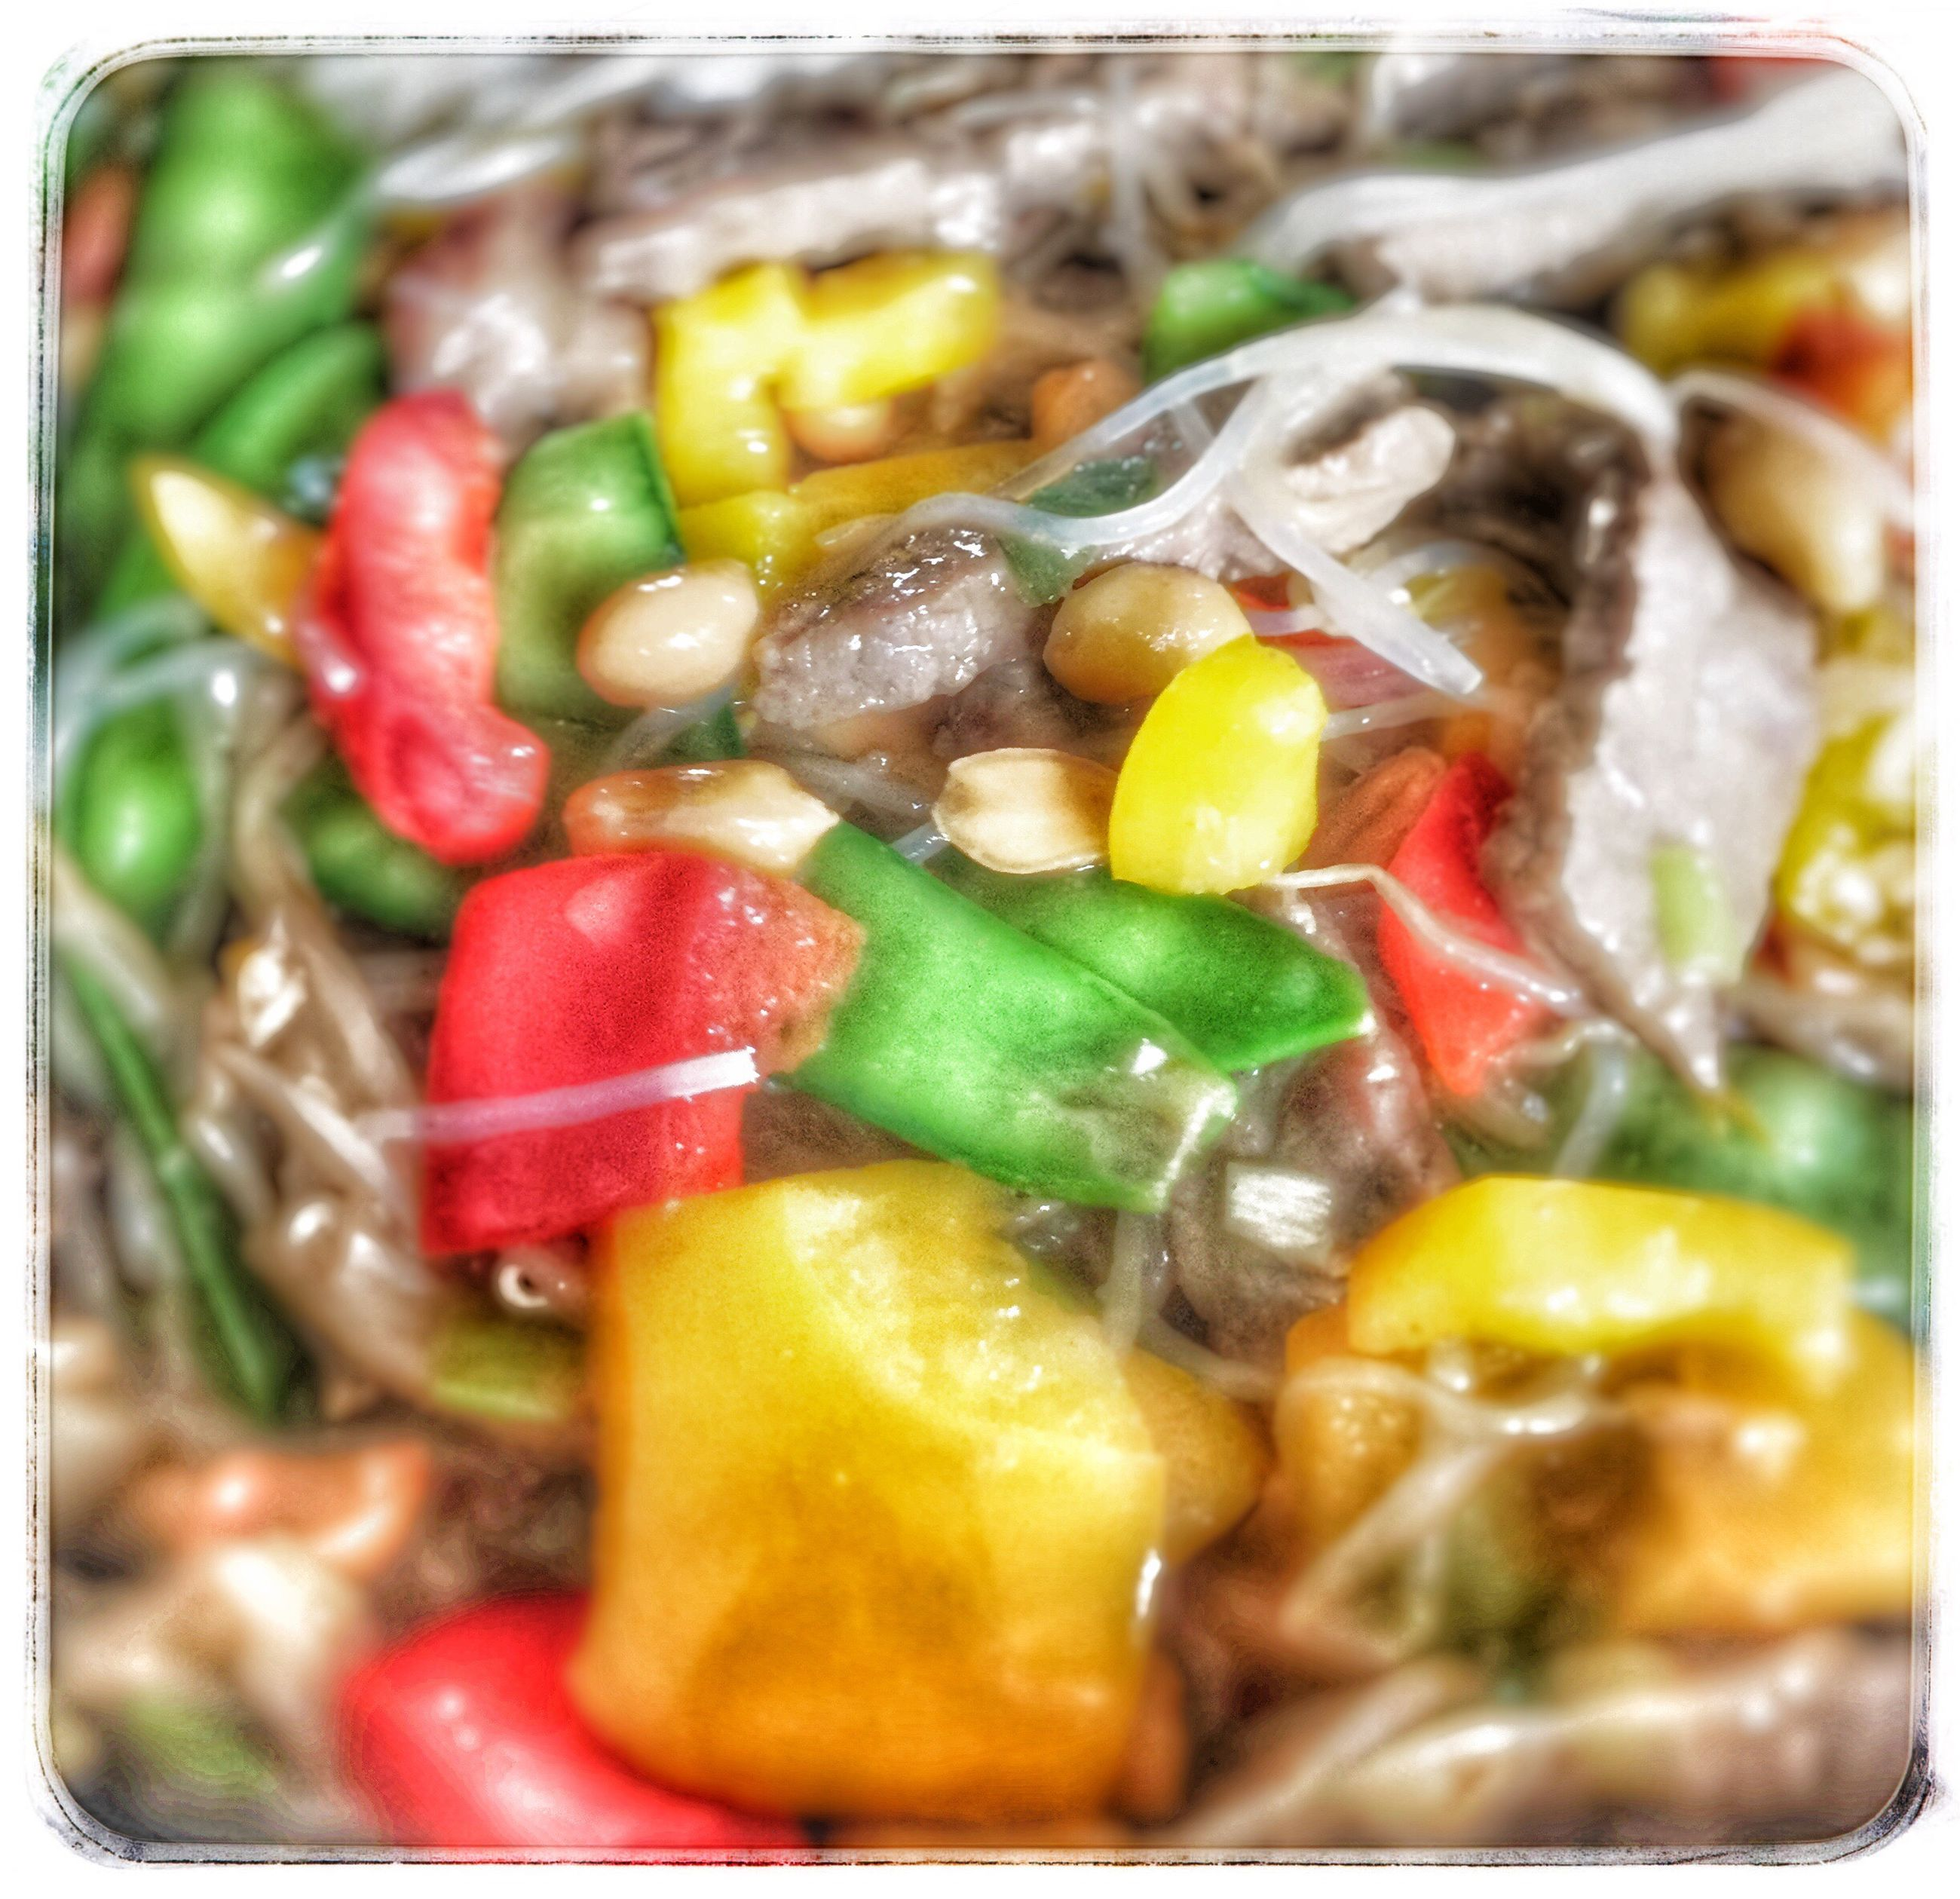 food and drink, food, transfer print, freshness, healthy eating, close-up, ready-to-eat, indoors, auto post production filter, vegetable, meal, selective focus, serving size, still life, bowl, plate, soup, indulgence, meat, focus on foreground